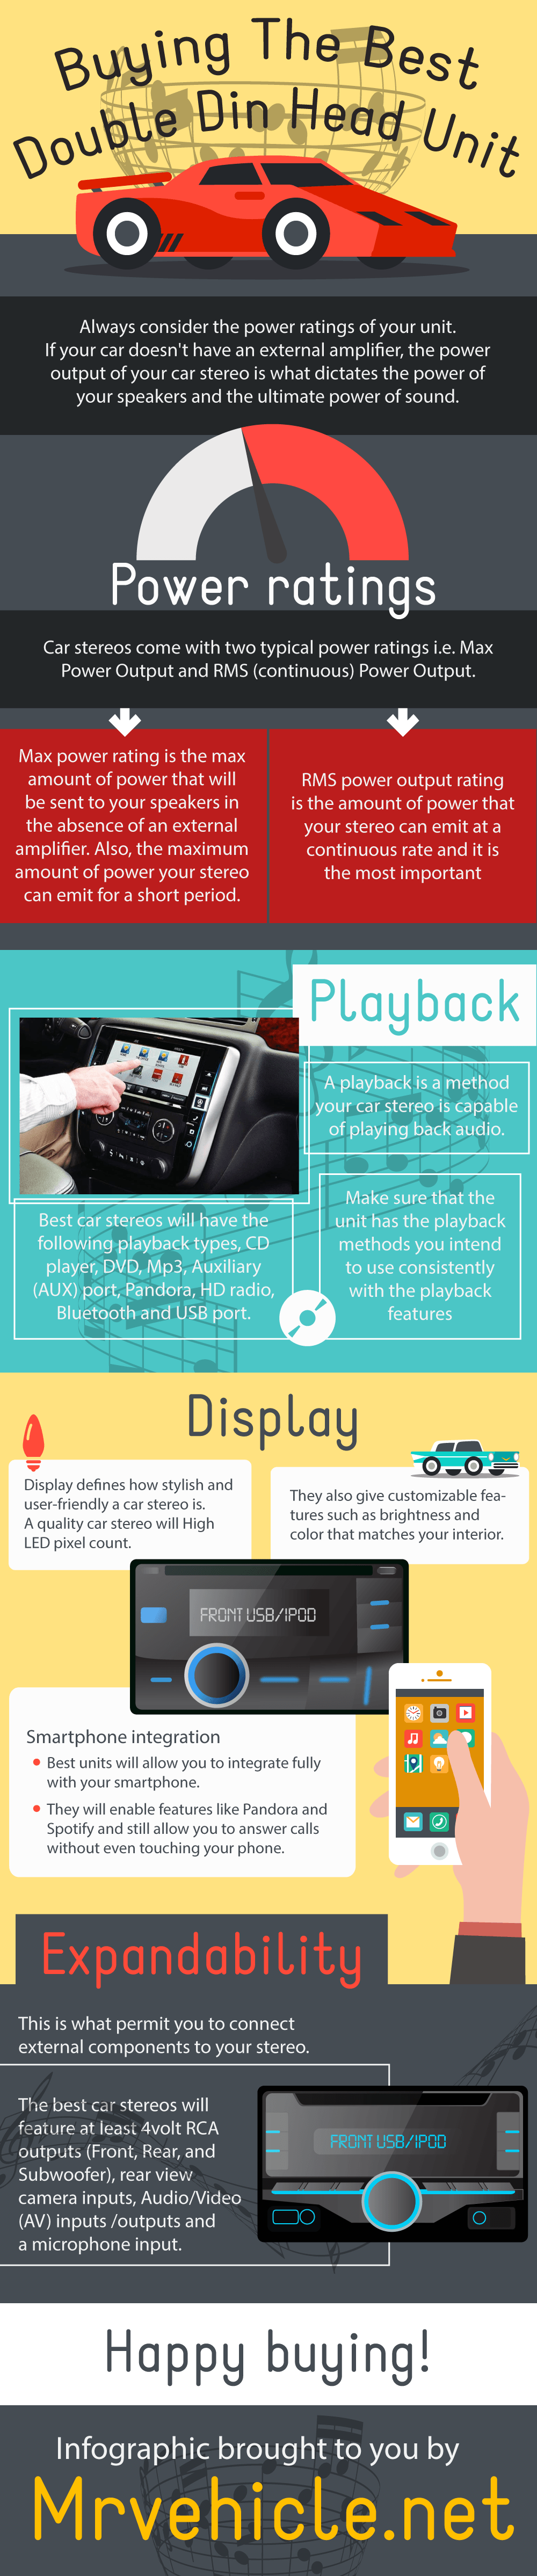 best double din head unit infographic